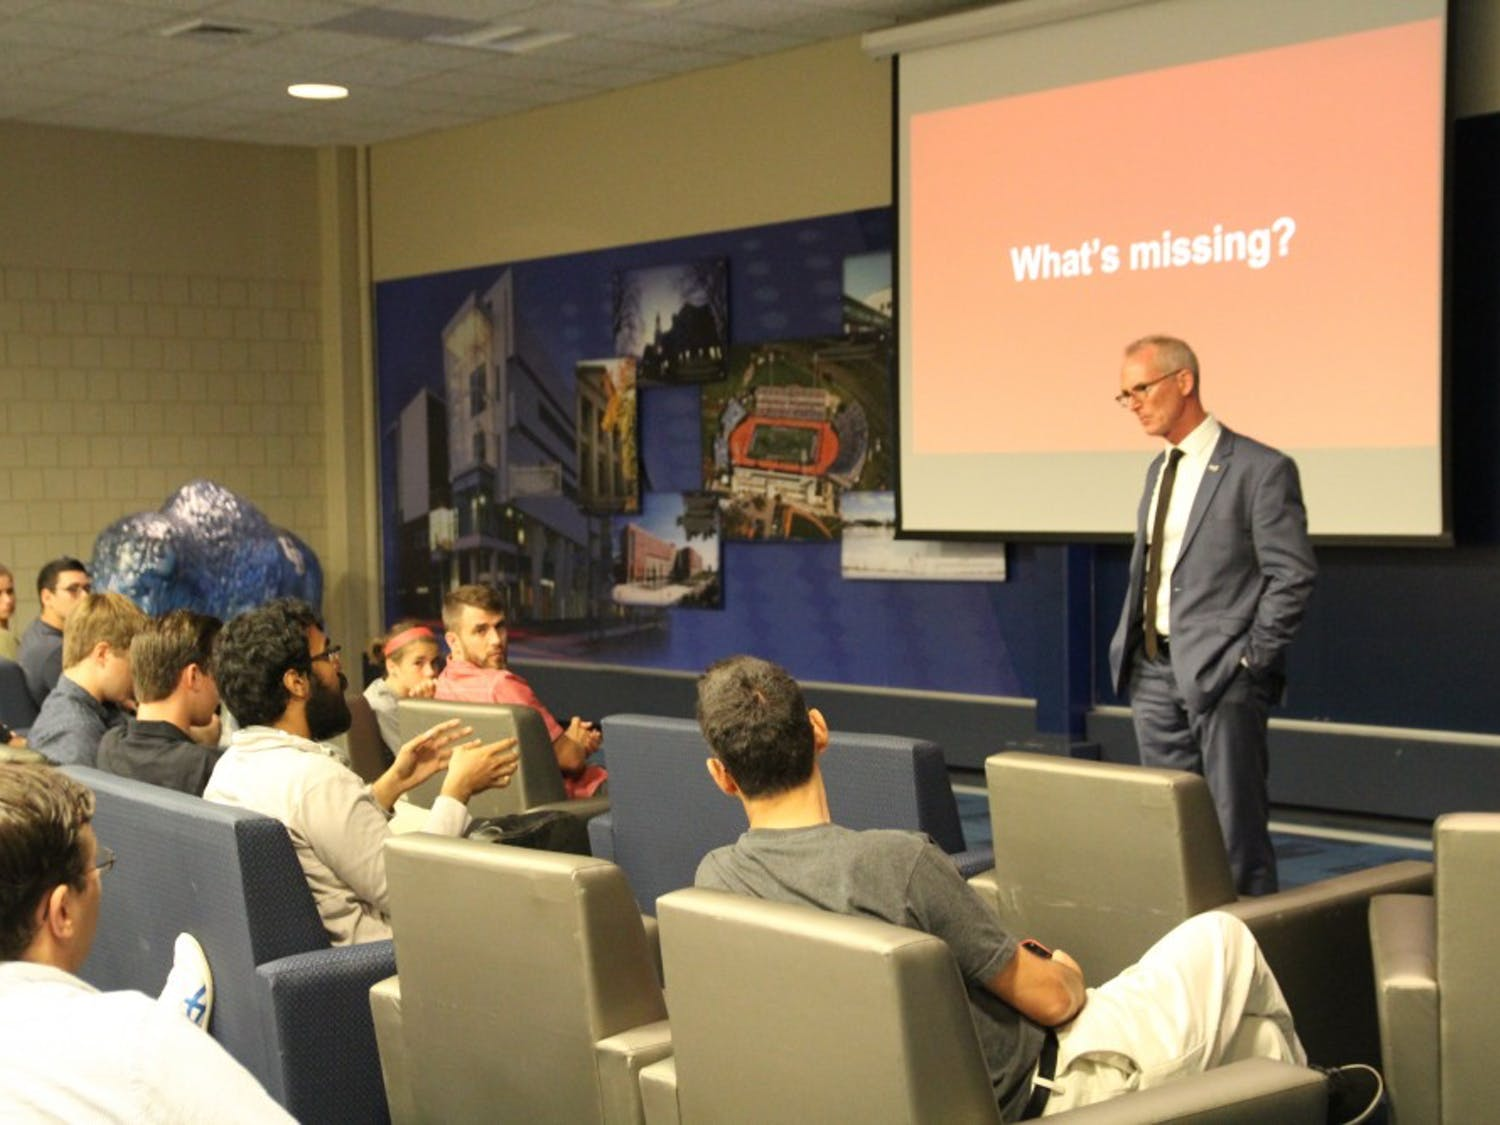 """Former U.S. Rep Bob Inglis (R-S.C.) speaks with students during an event in the Student Union on Thursday. Inglis proposed a free enterprise solution to climate change and talked about his """"metamorphosis"""" to understanding the issue as a conservative."""